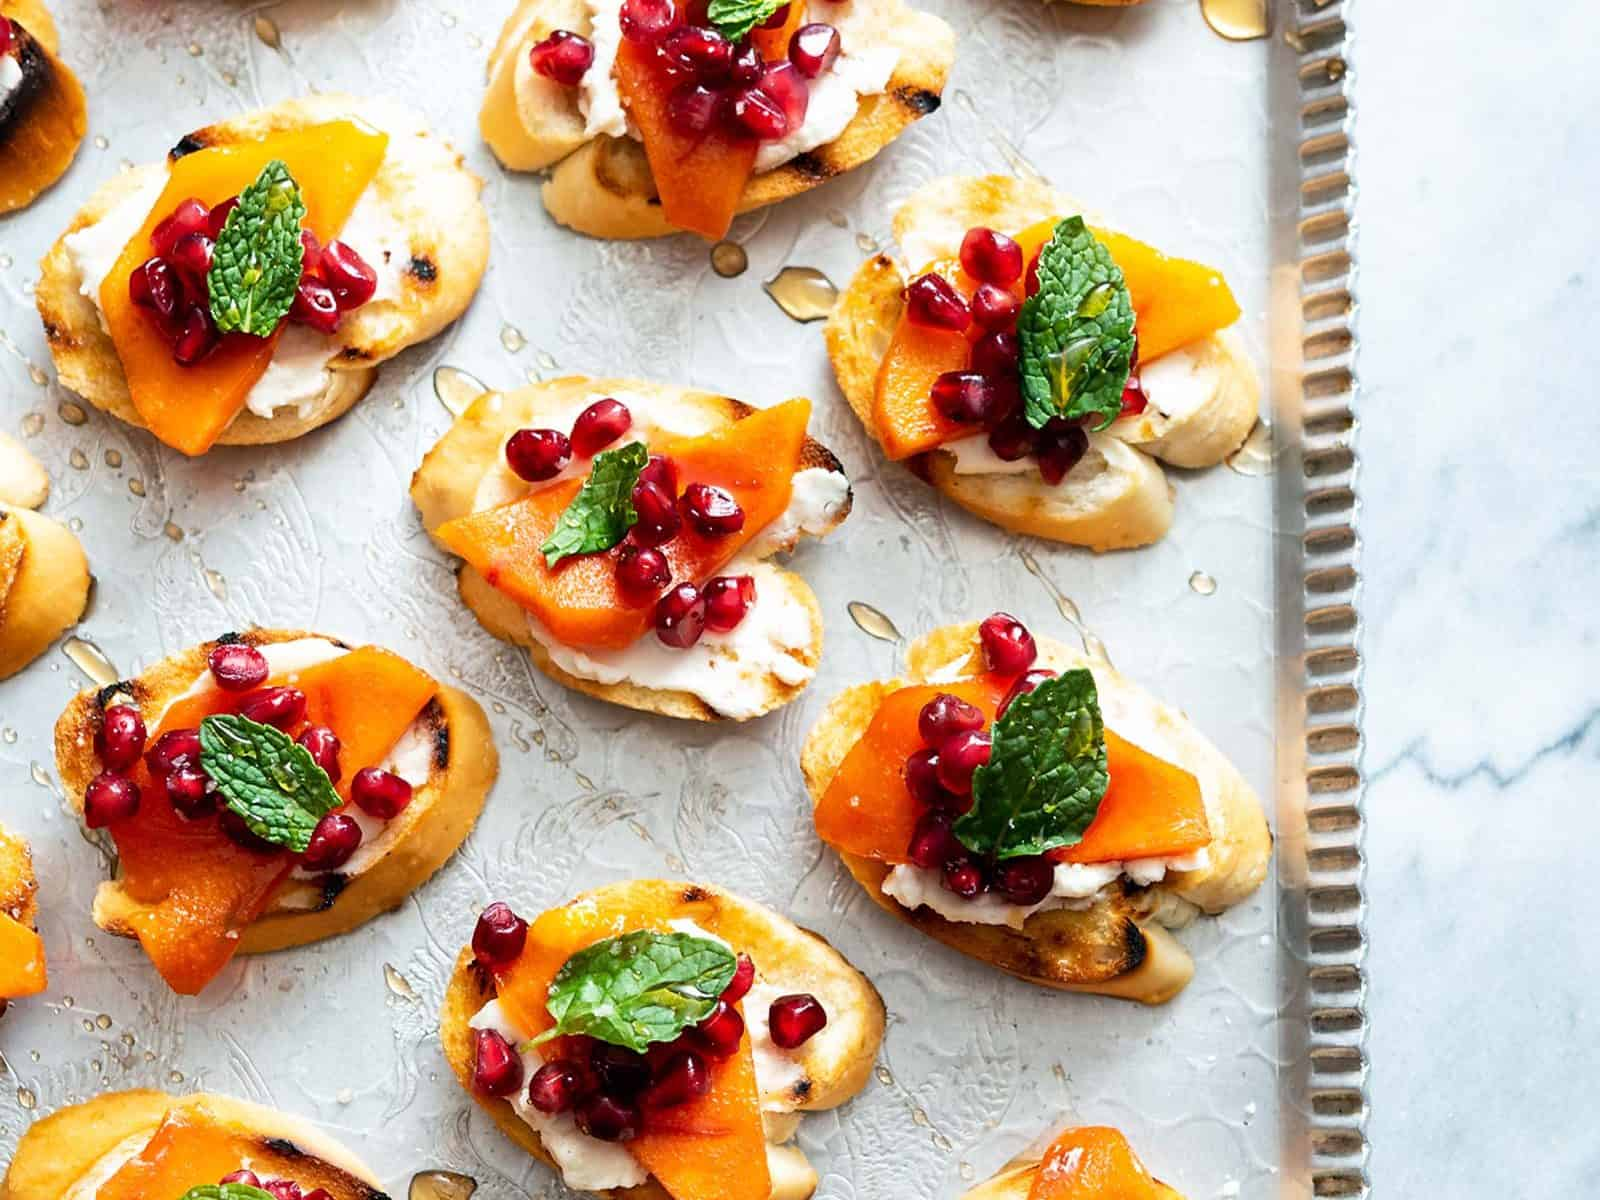 These Pomegranate Persimmon Crostini are as delicious as they are gorgeous. Plus, VERY easy-to-make! #vegan #soyfree #appetizer #veganyackattack